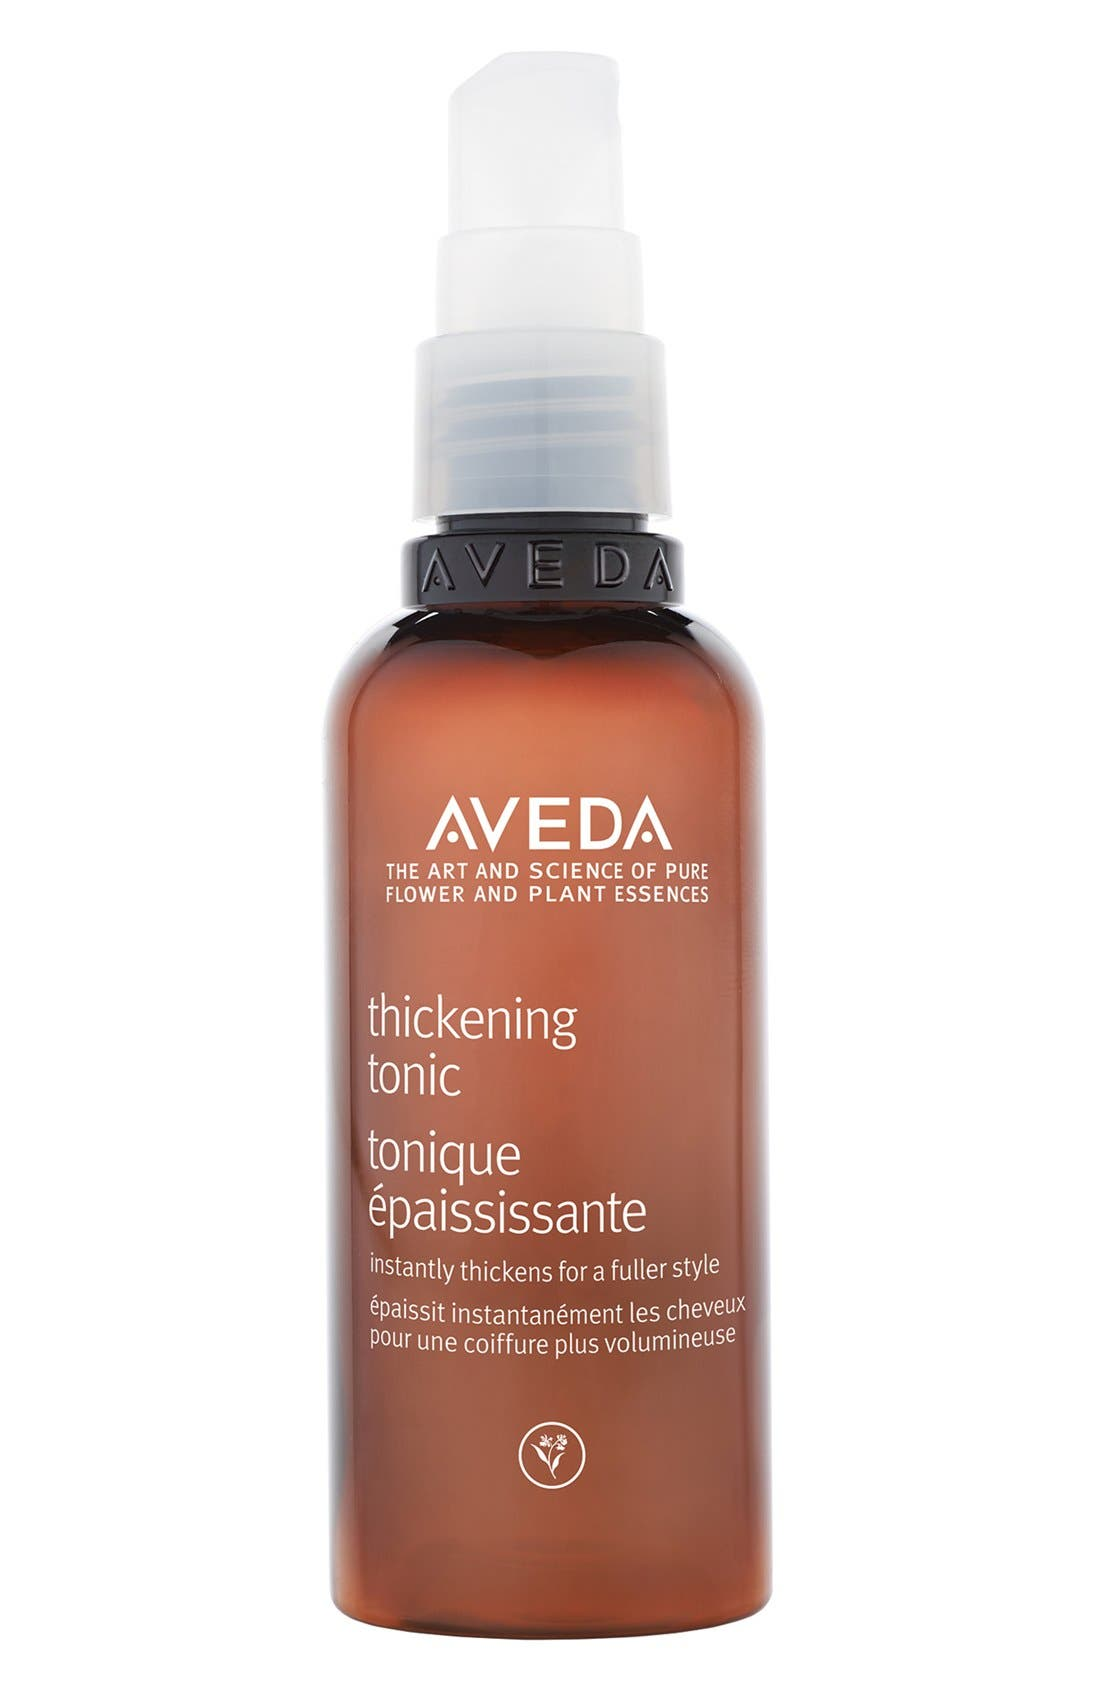 Thickening Tonic by Aveda